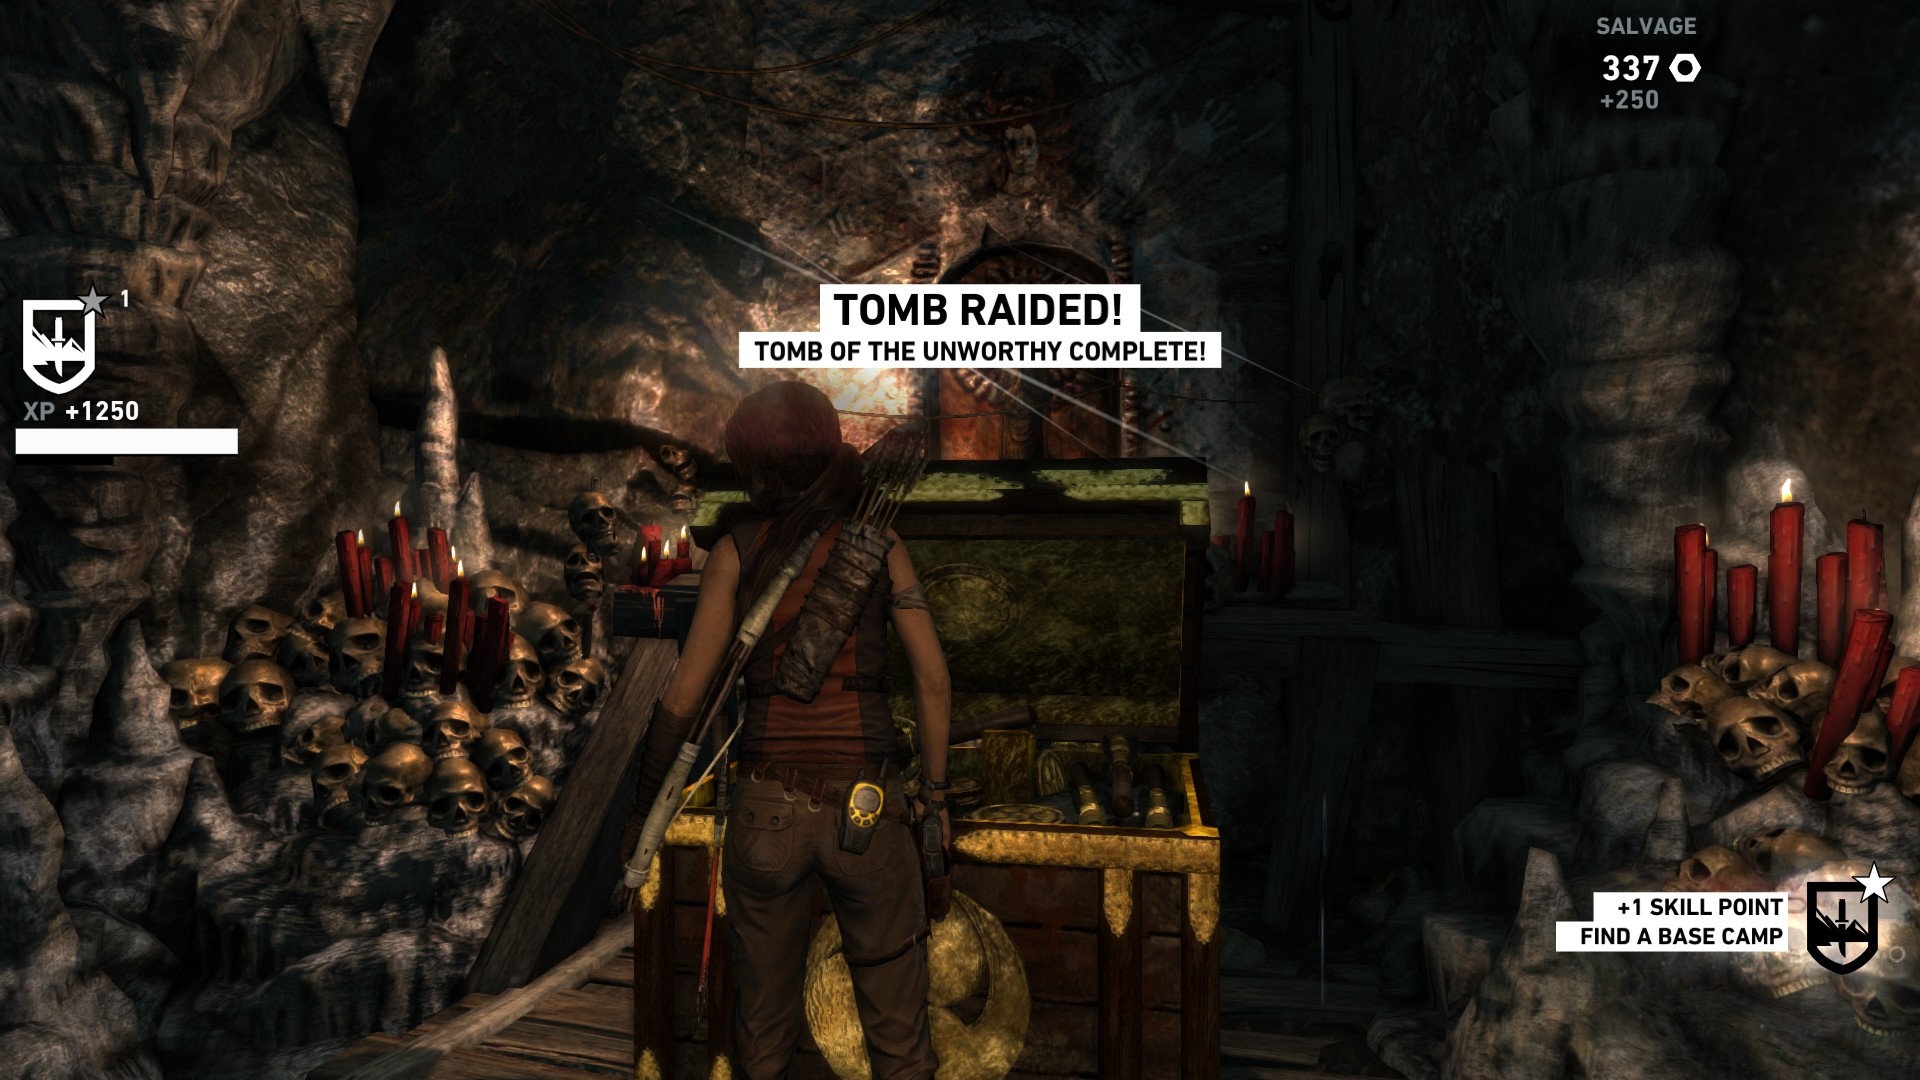 Tomb Raider Diaries #3: Into the Wolves' Den